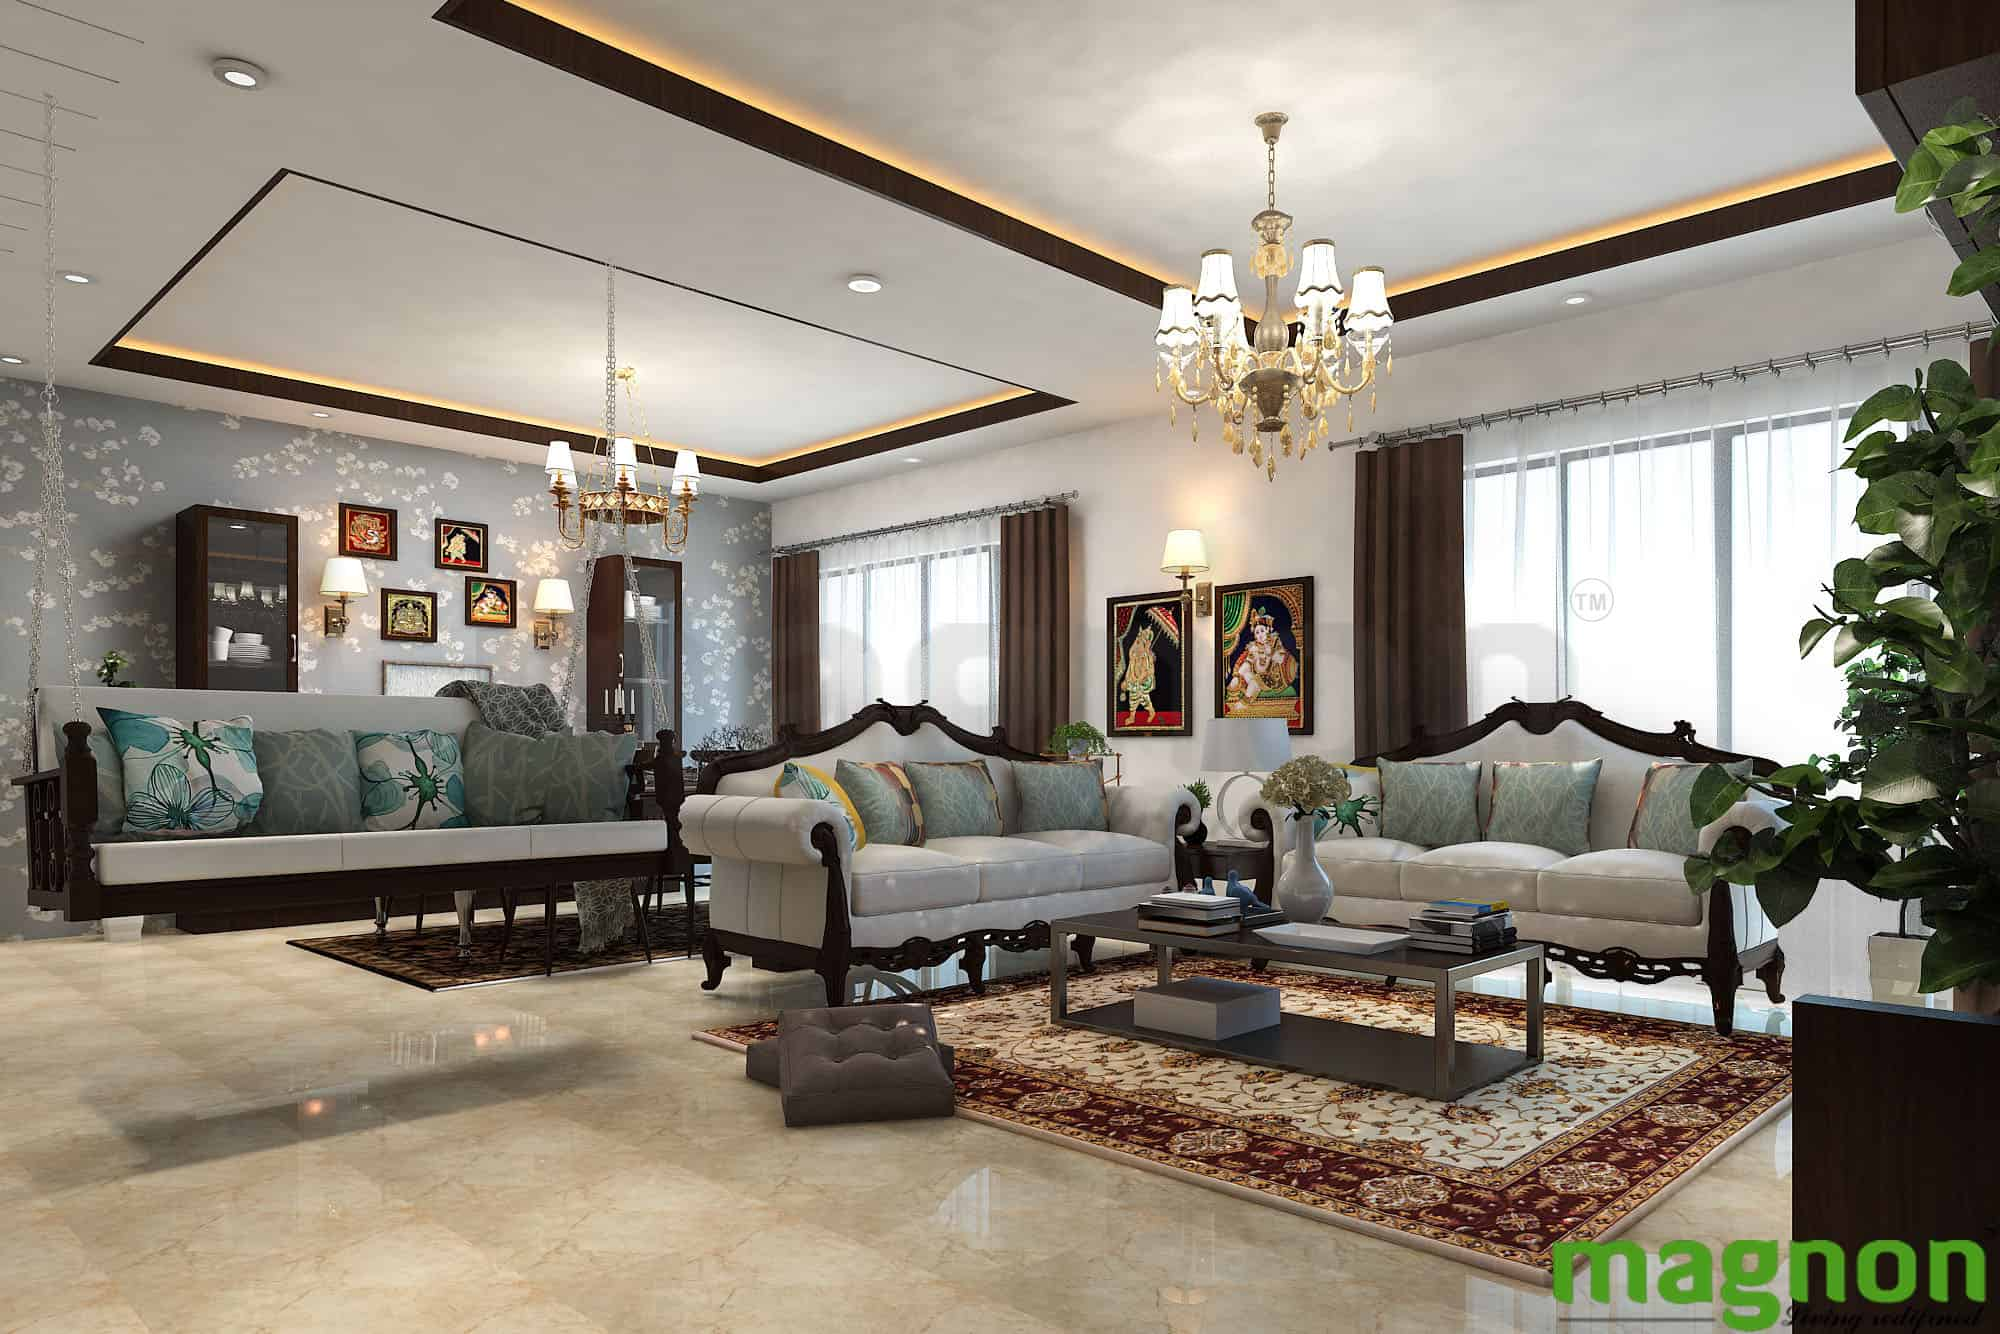 Designing Ideas for Small Living Rooms - Magnon India ...